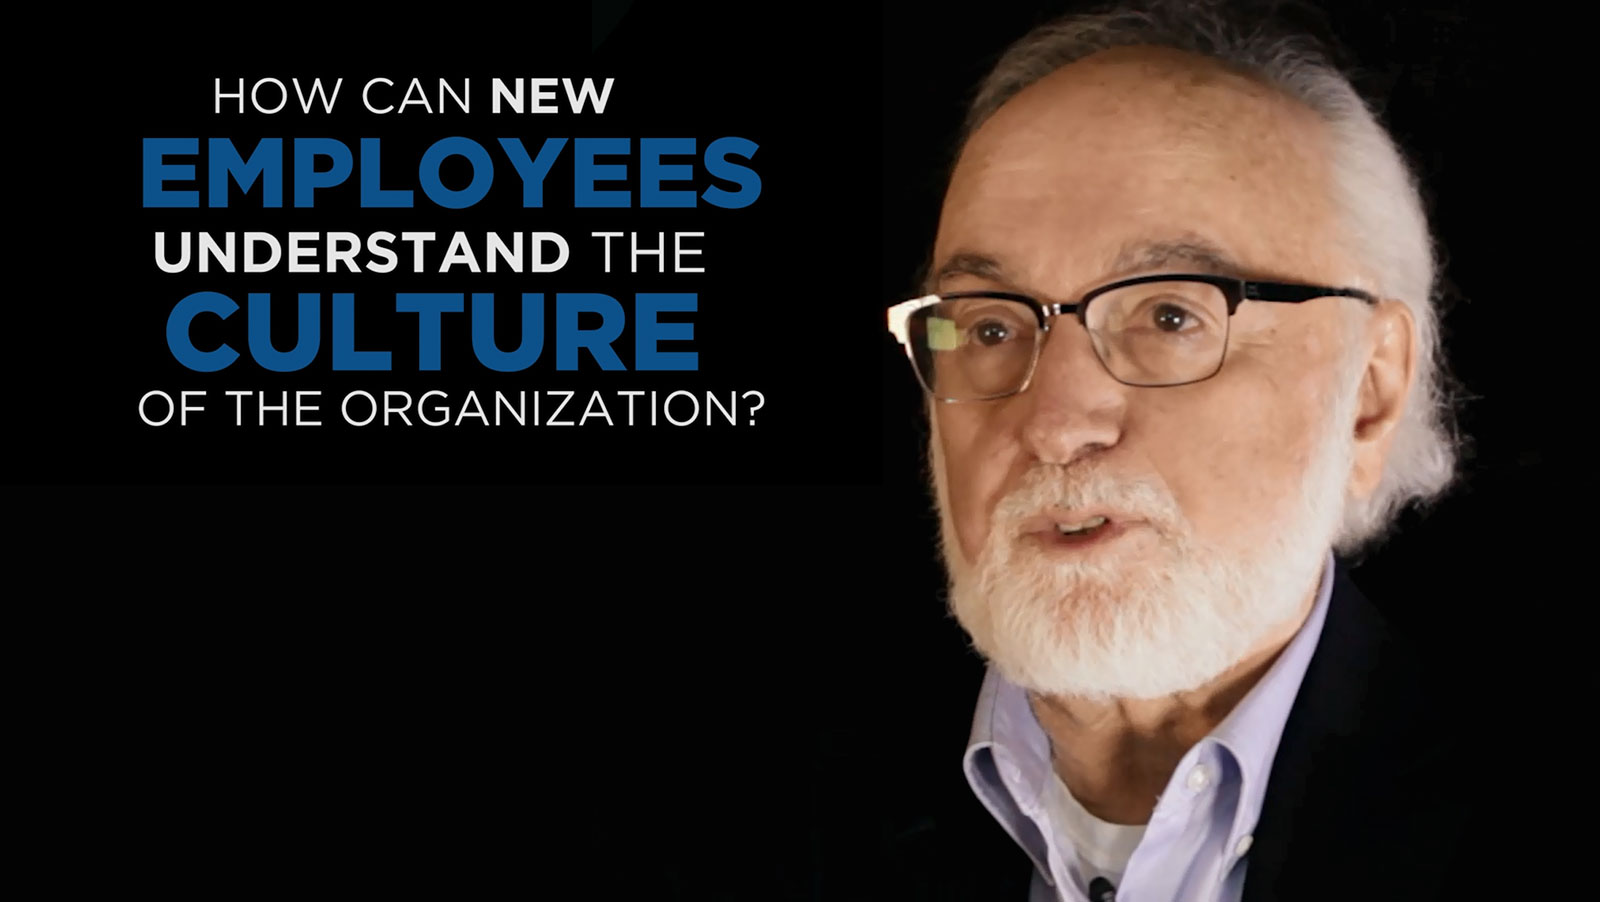 Shared Experience - How can new employees understand the culture of the organization?